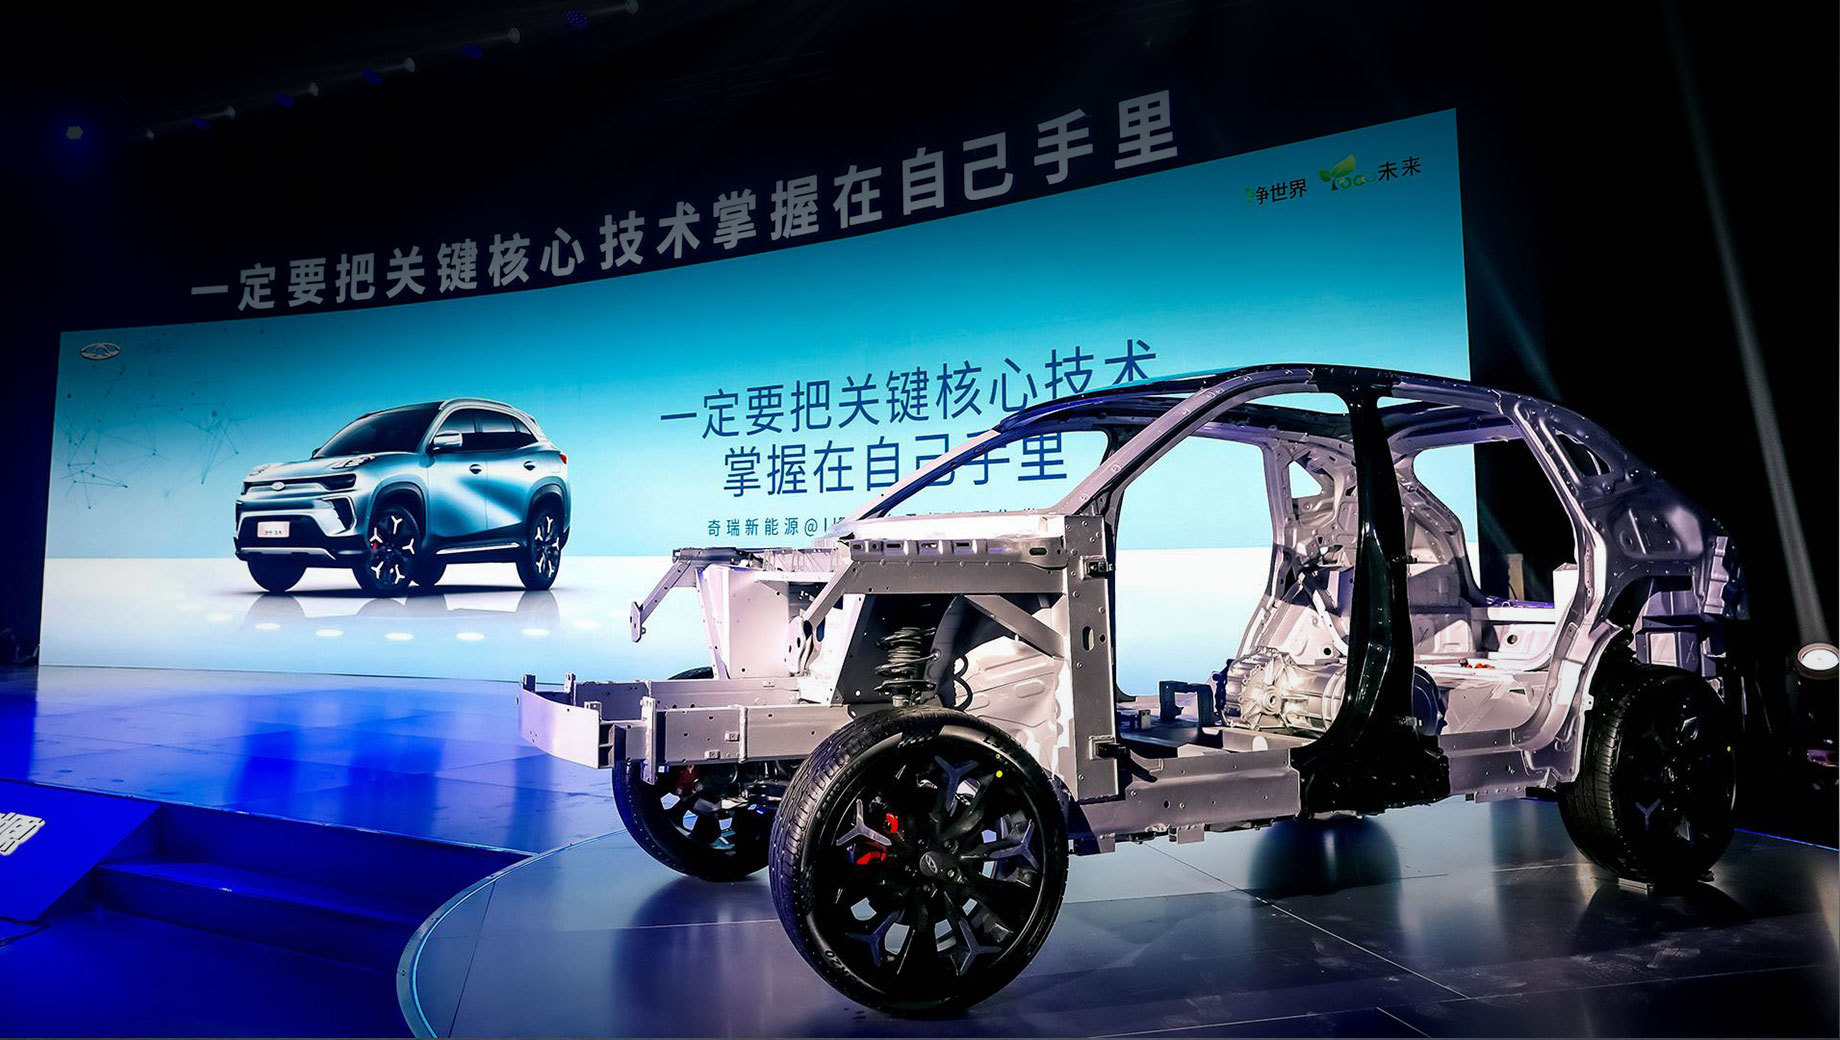 Chinese automaker Chery has unveiled a new dedicated EV platform named @Life. Designed by the company's New Energy subdivision, it supports powertrains in the 129-490 horsepower (96 – 365 kW) range, as well as batteries NEDC-rated above 700 km (435 miles).